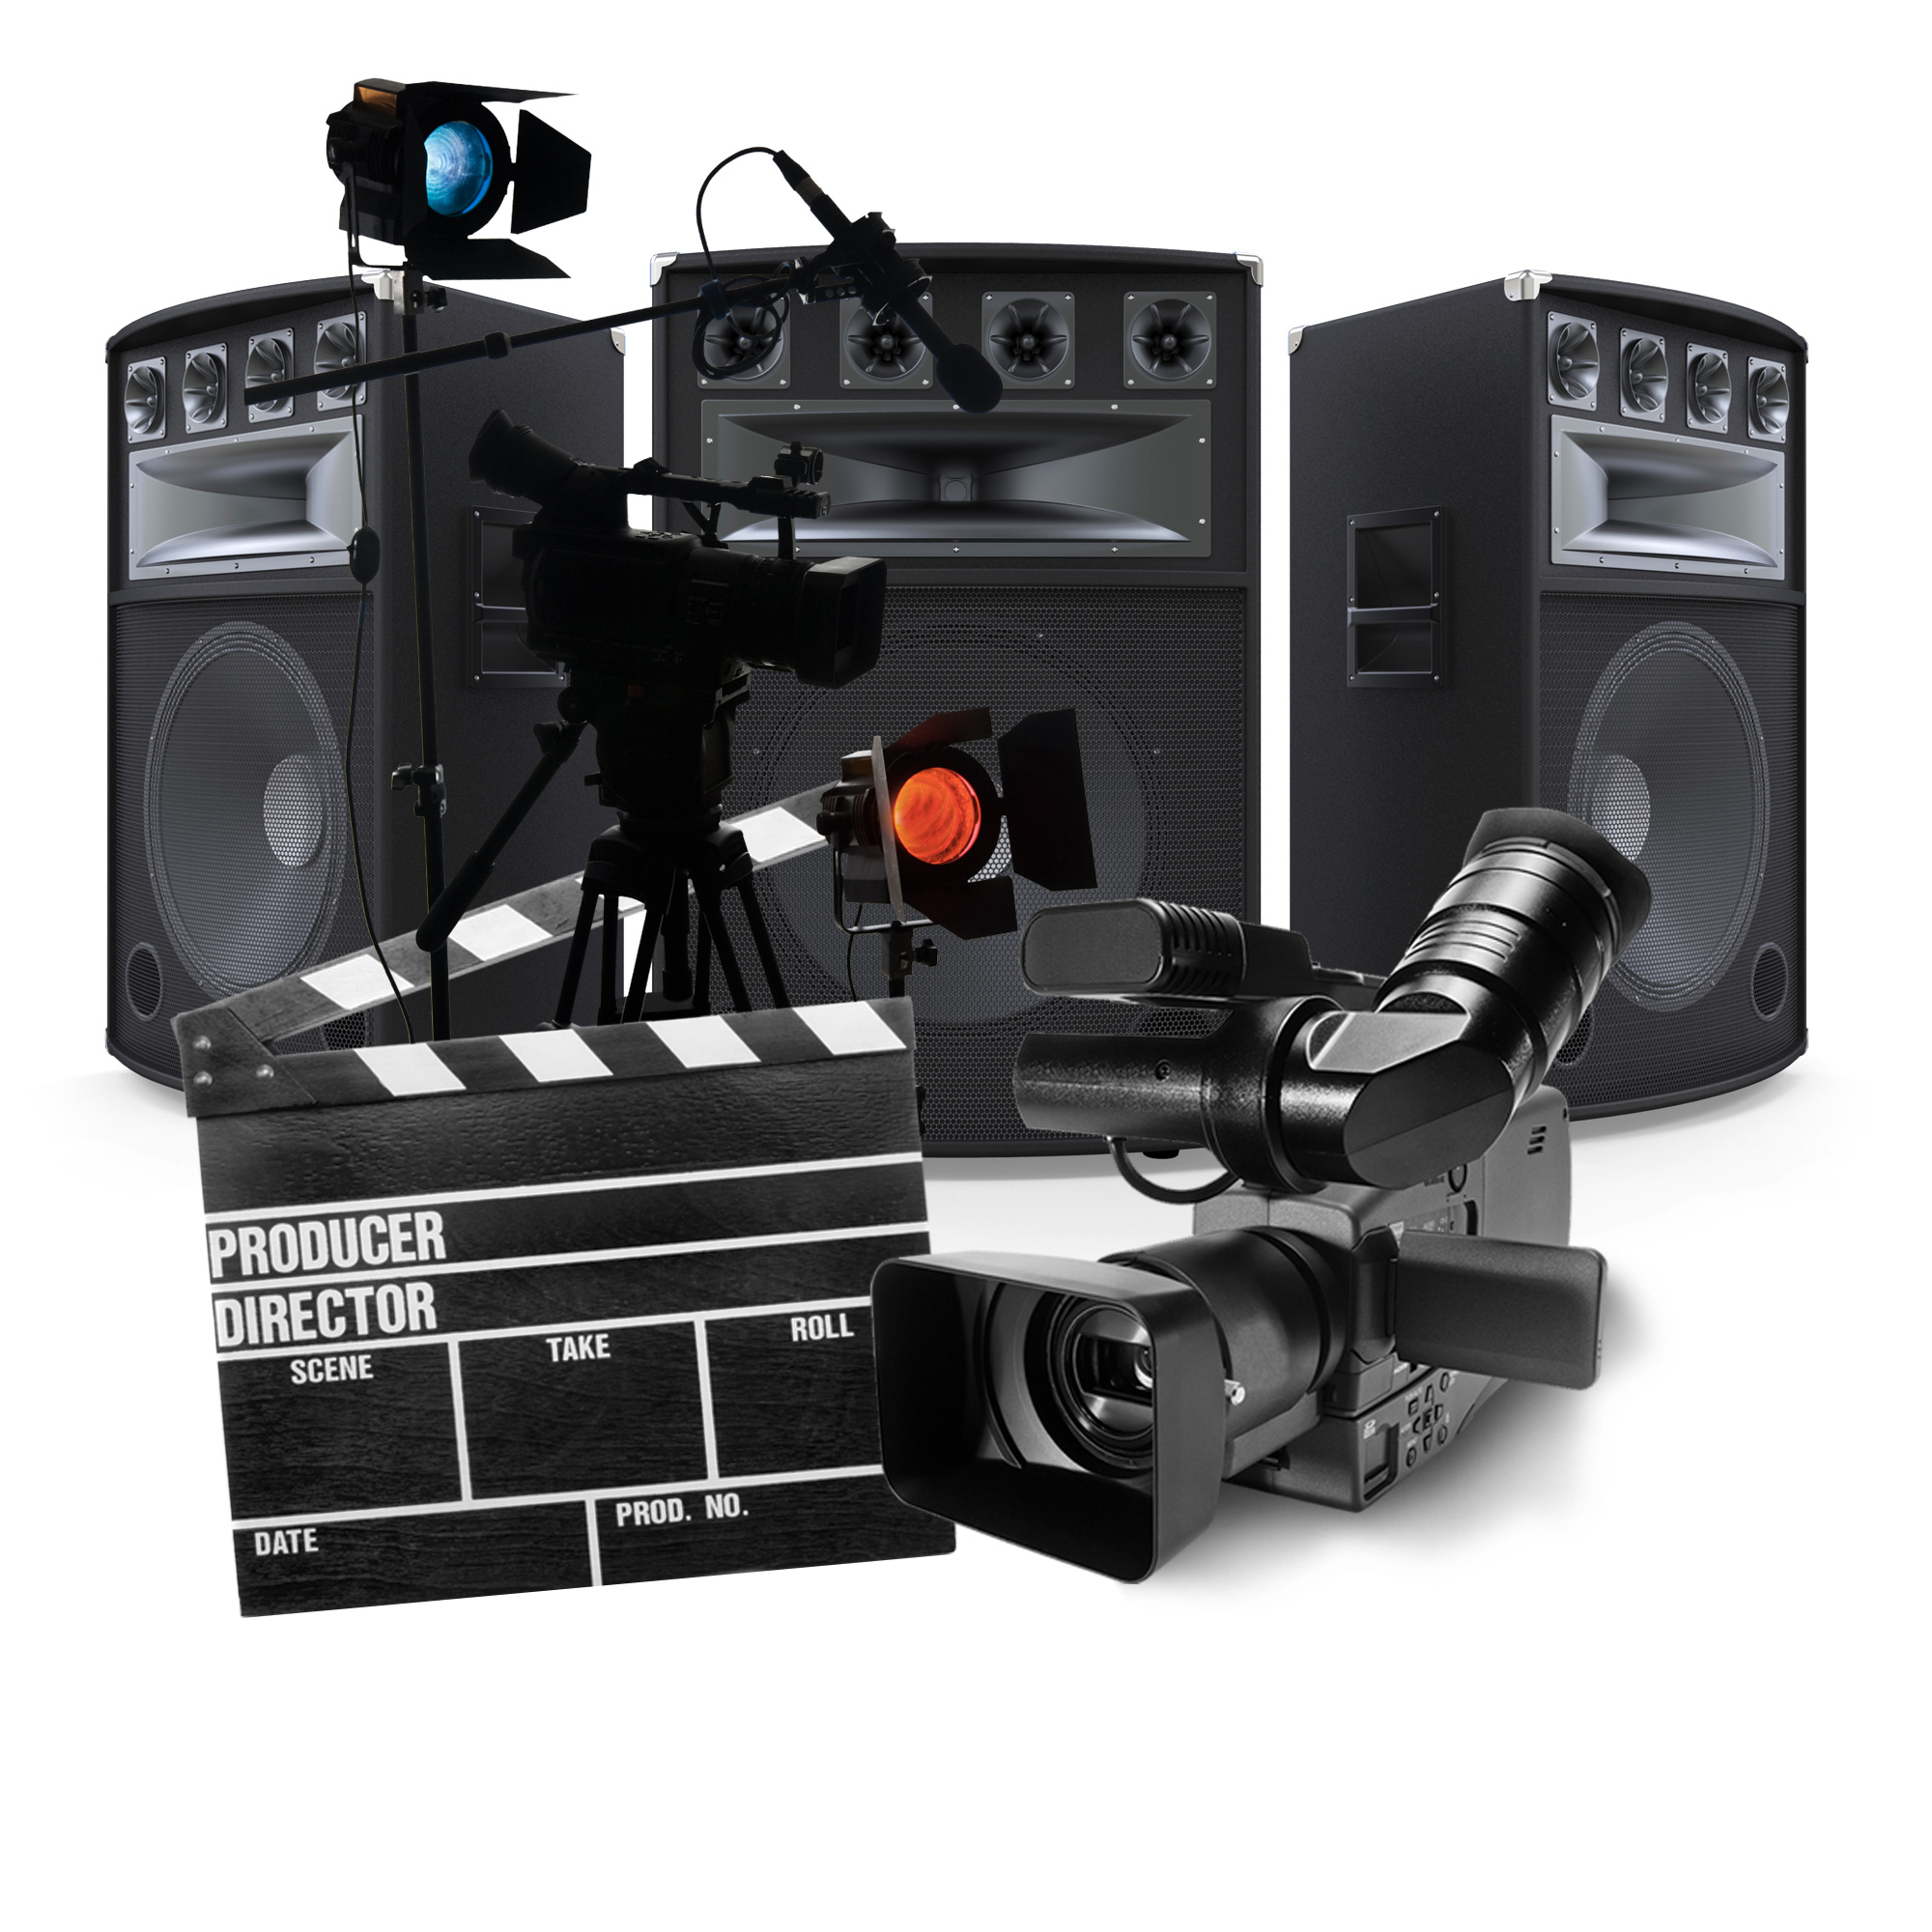 Audio and video production equipment